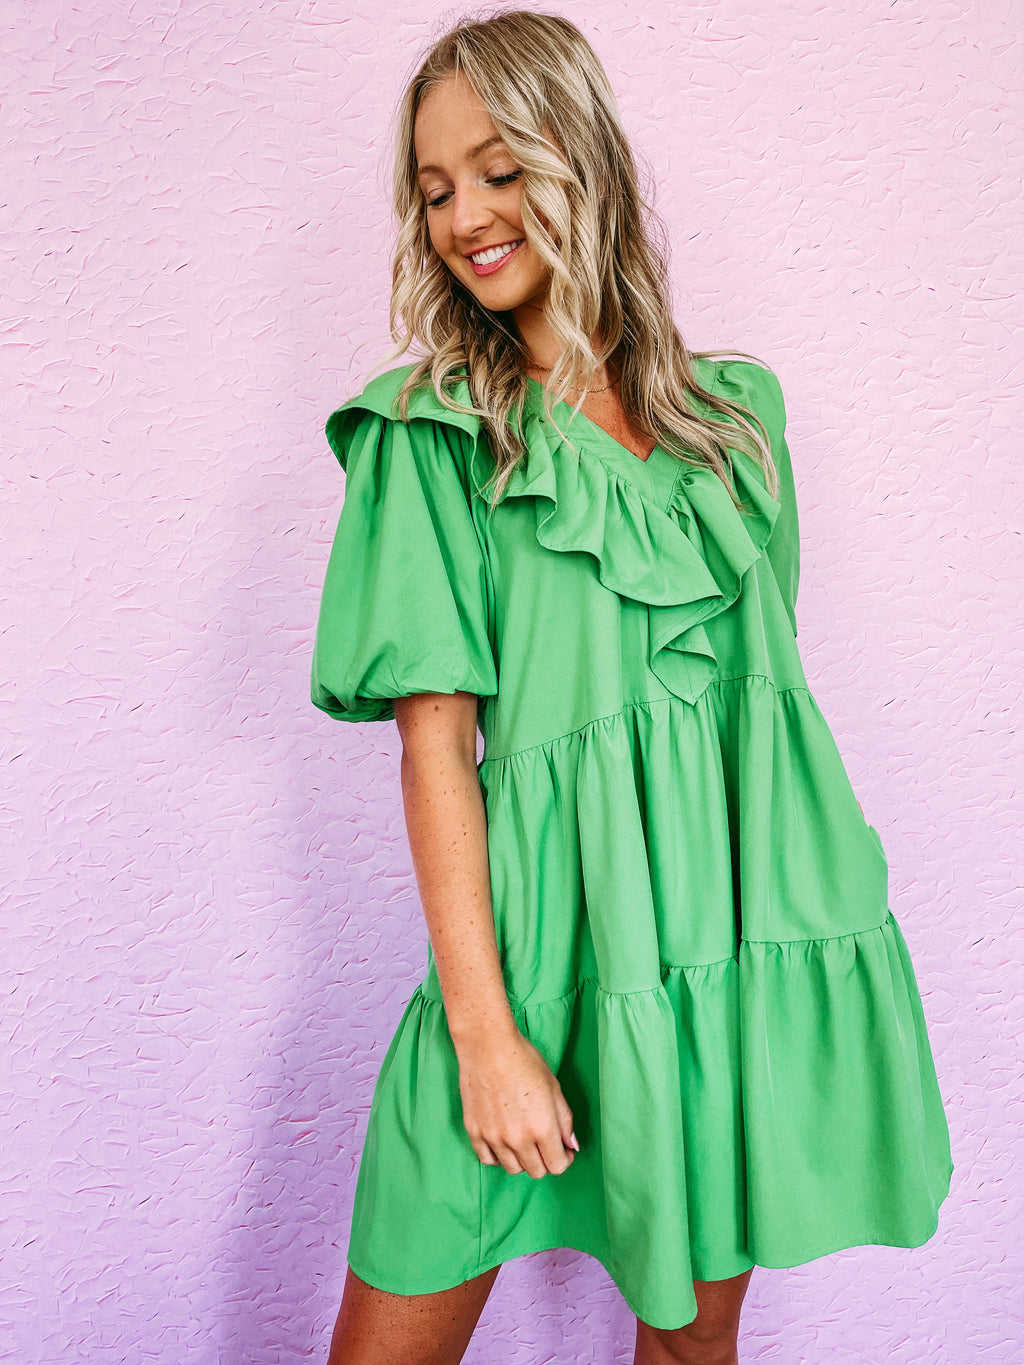 End of Day Leo Skirt - blue grey